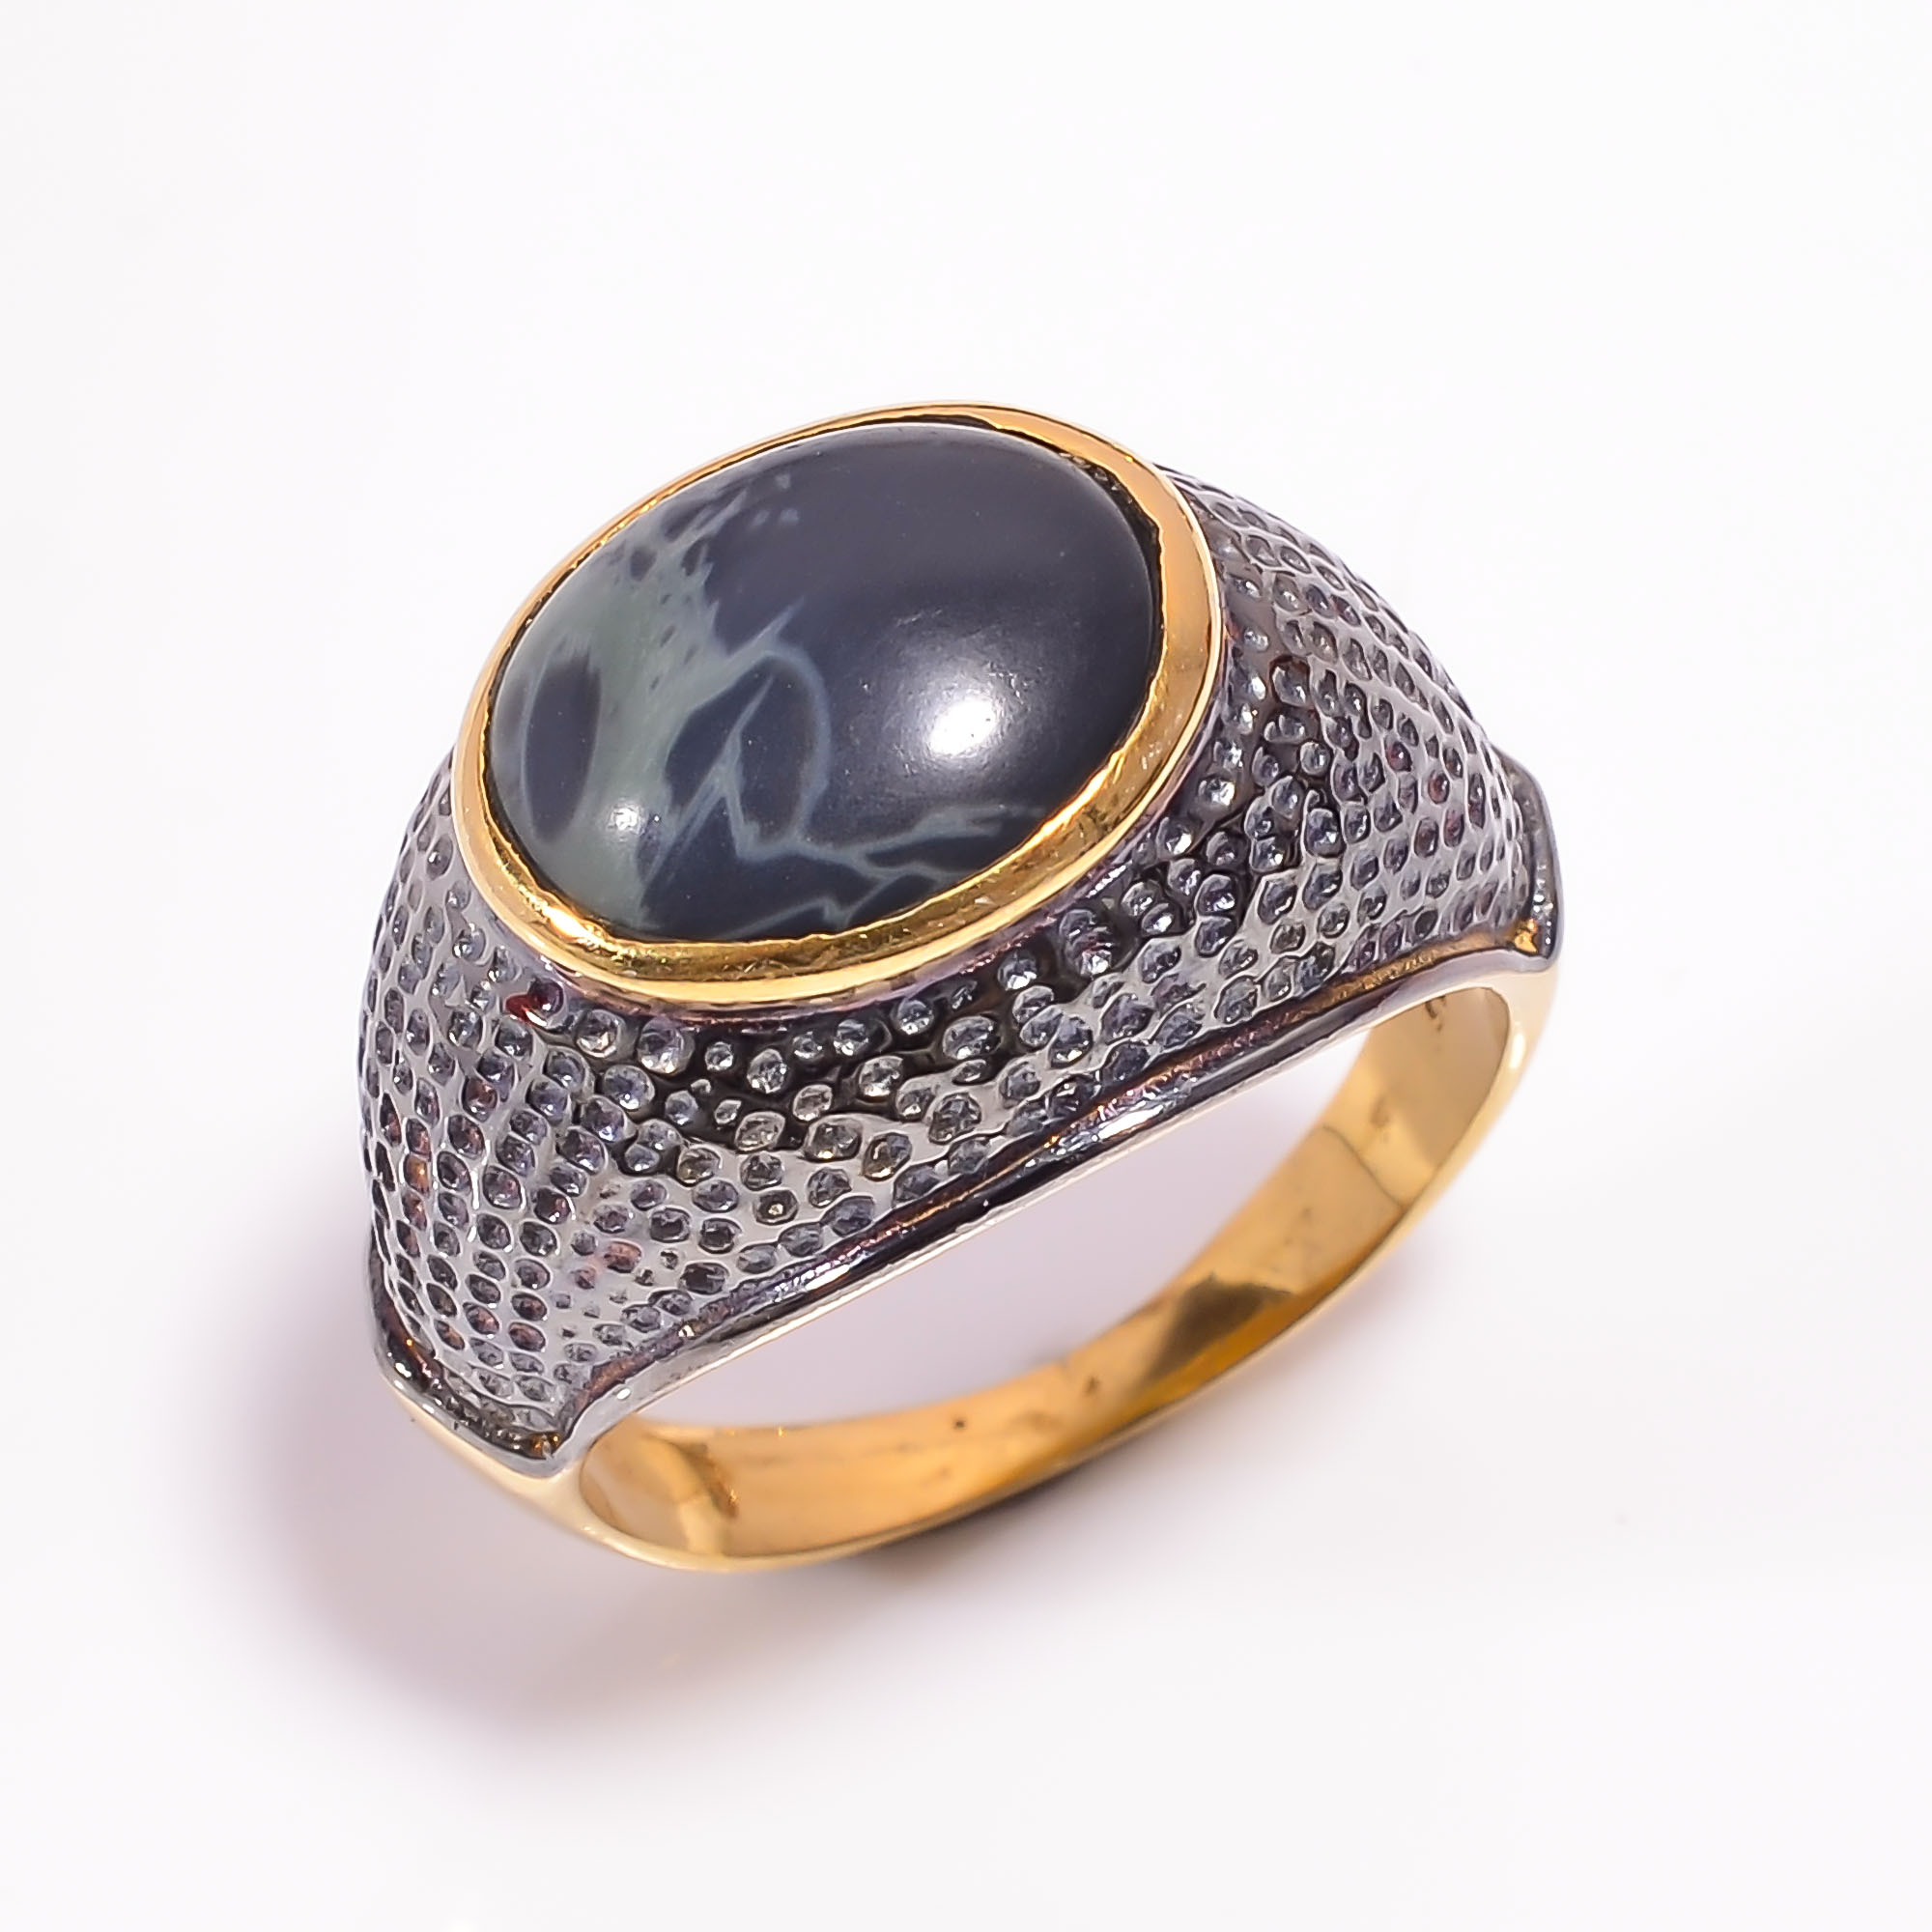 925 Sterling Silver Gold Plated & Black Rhodium Two Tone Spider Web Jasper Ring Size US 8